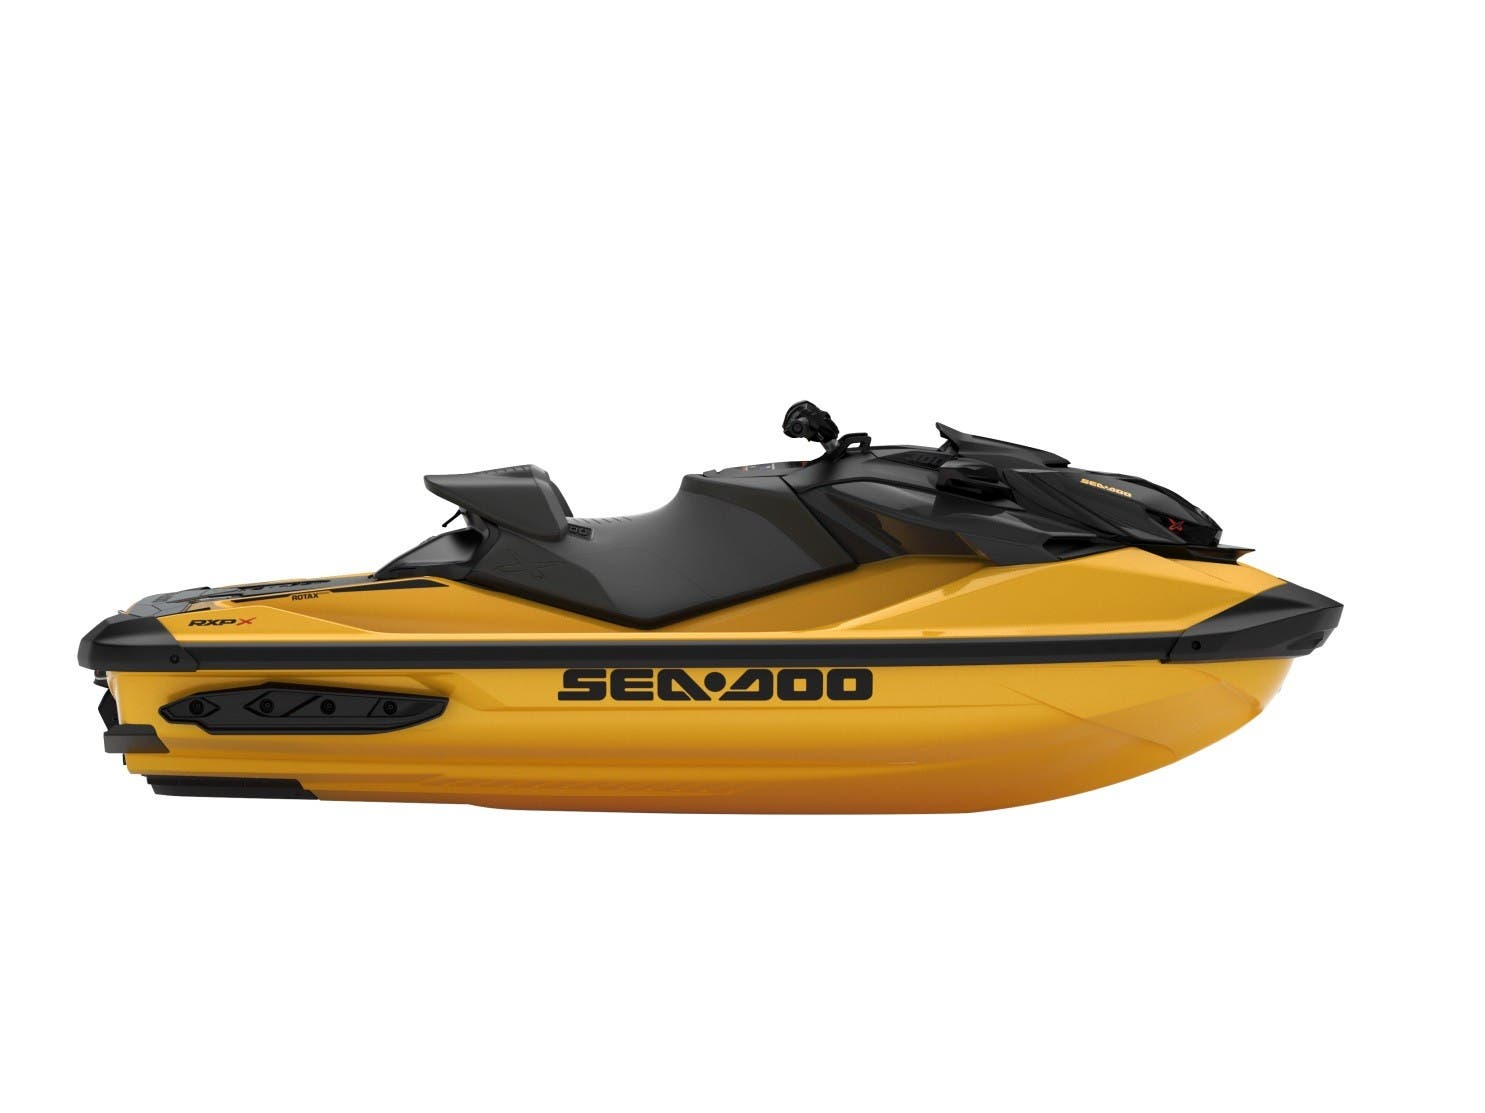 2021 Sea Doo PWC boat for sale, model of the boat is RXP X 300 & Image # 5 of 5